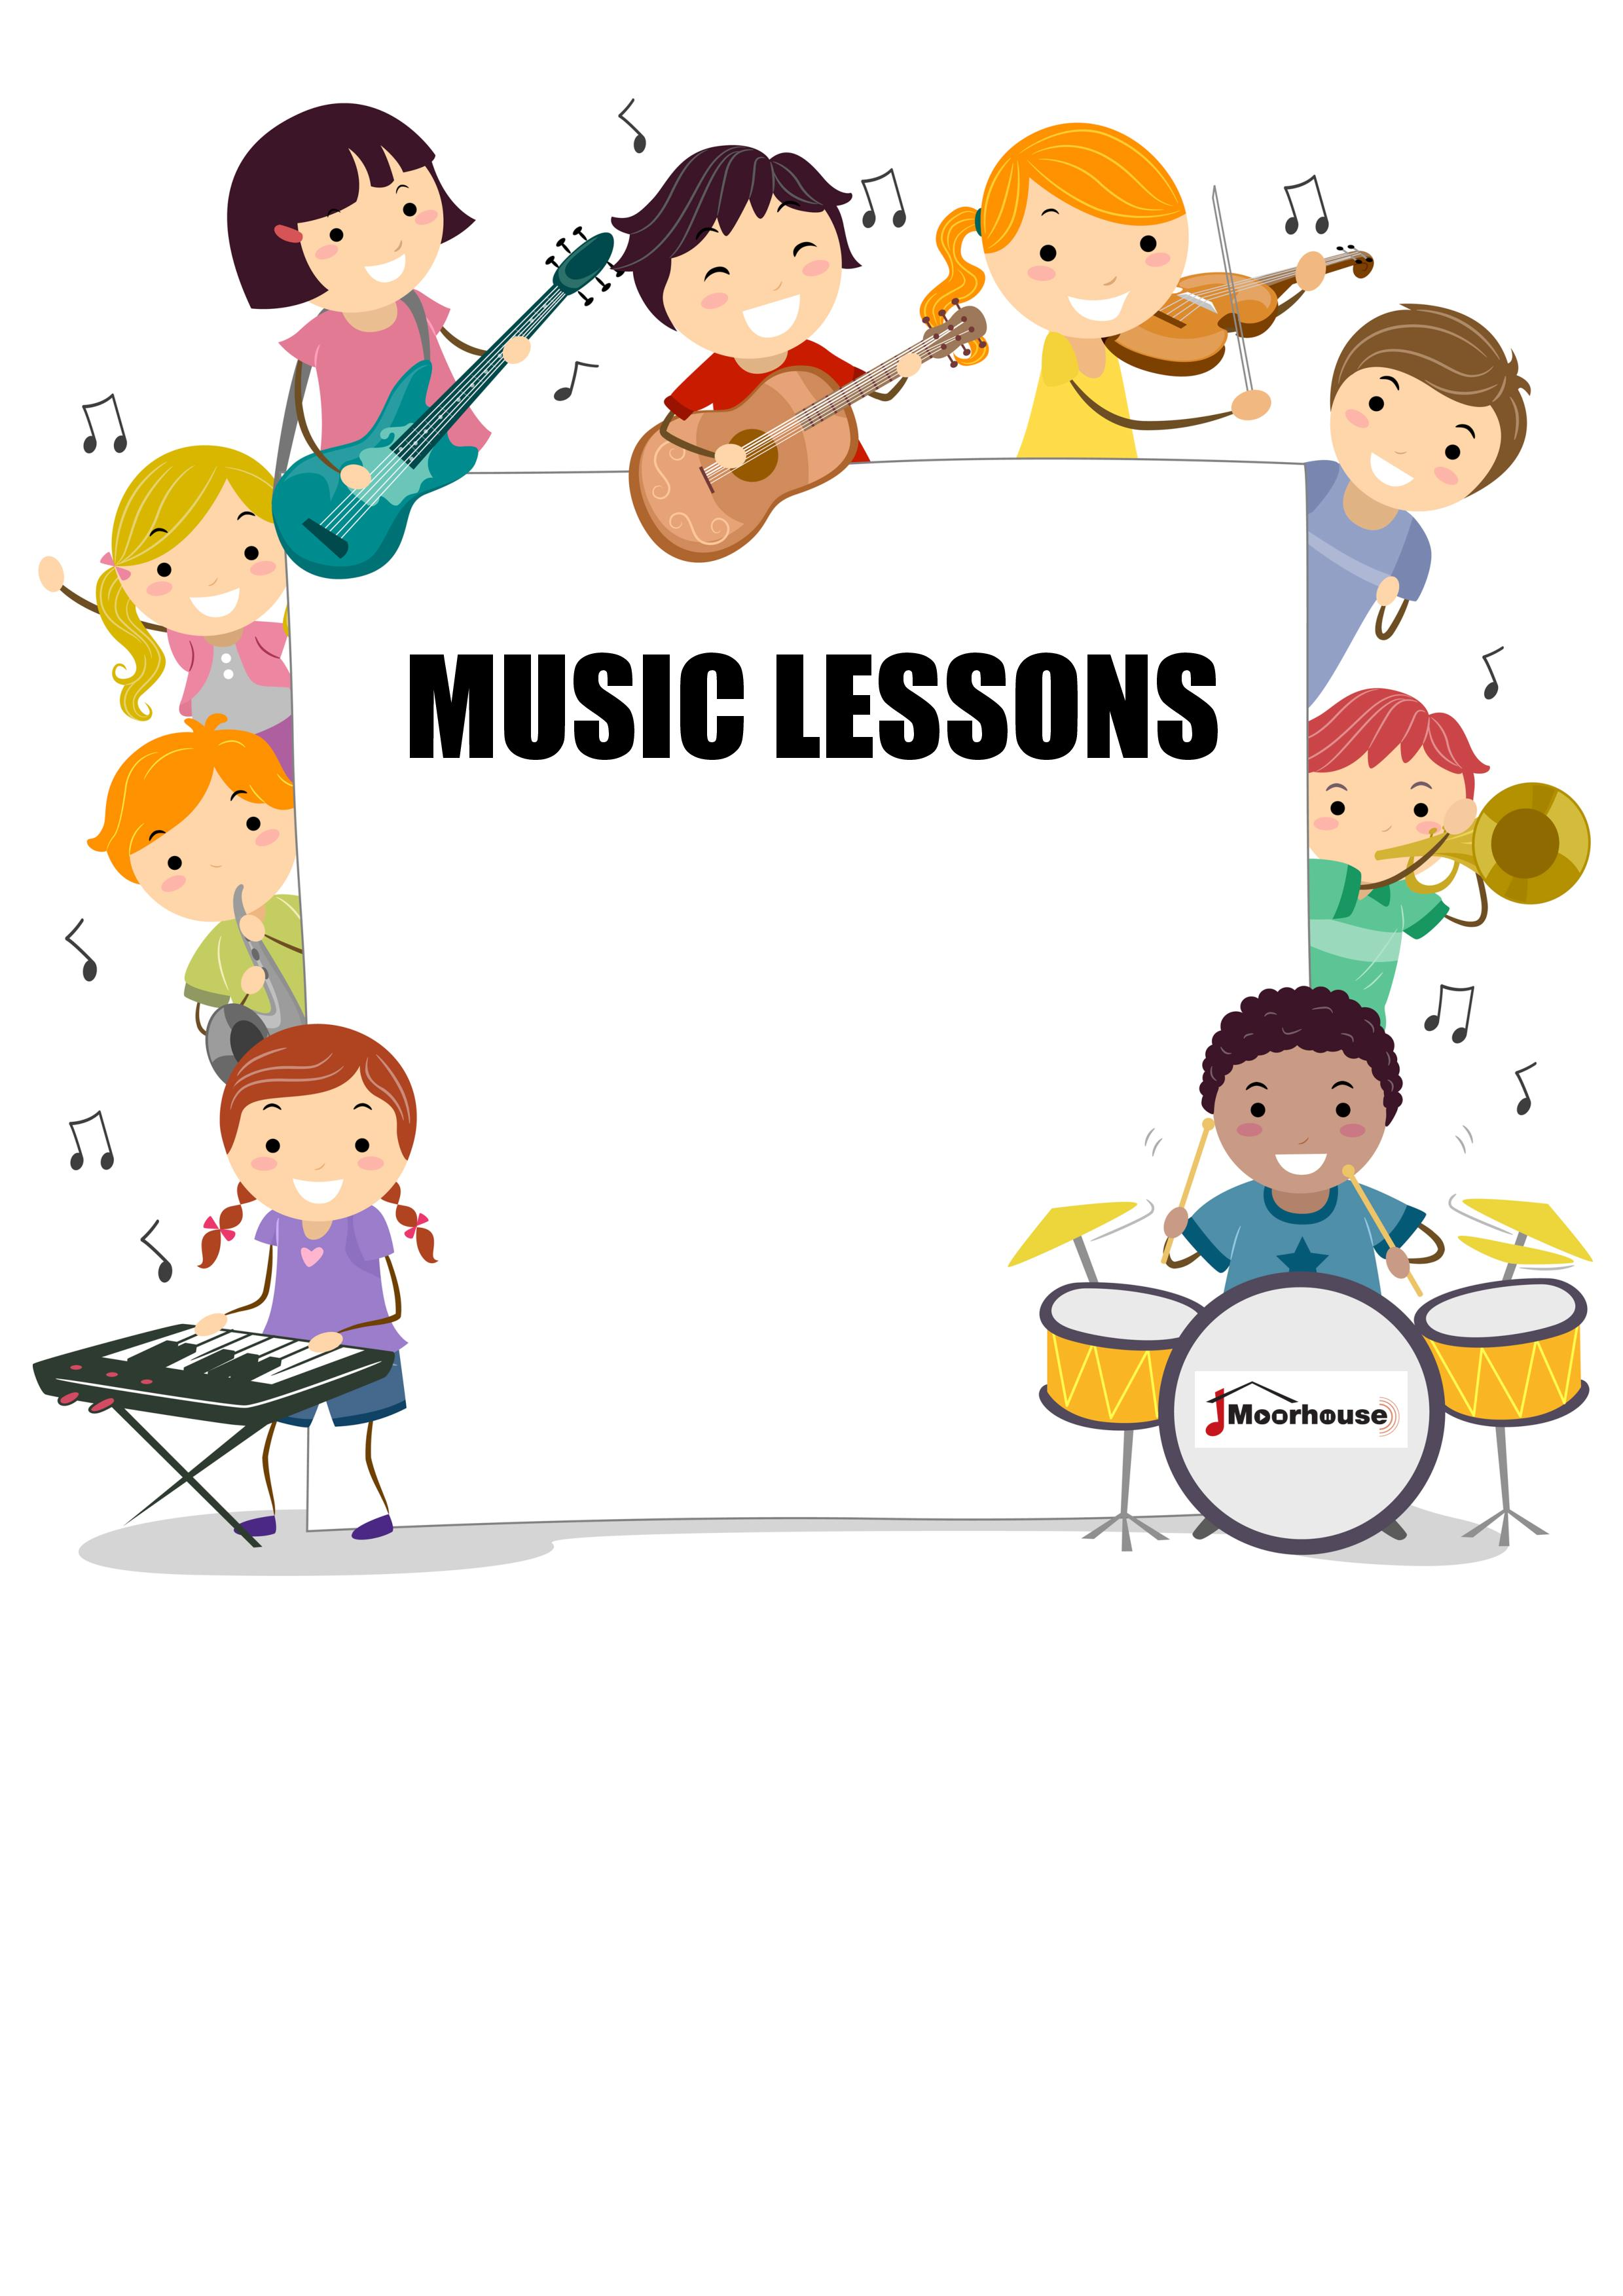 Tom Is An Experienced Music Teacher And Provides Guitar Lessons